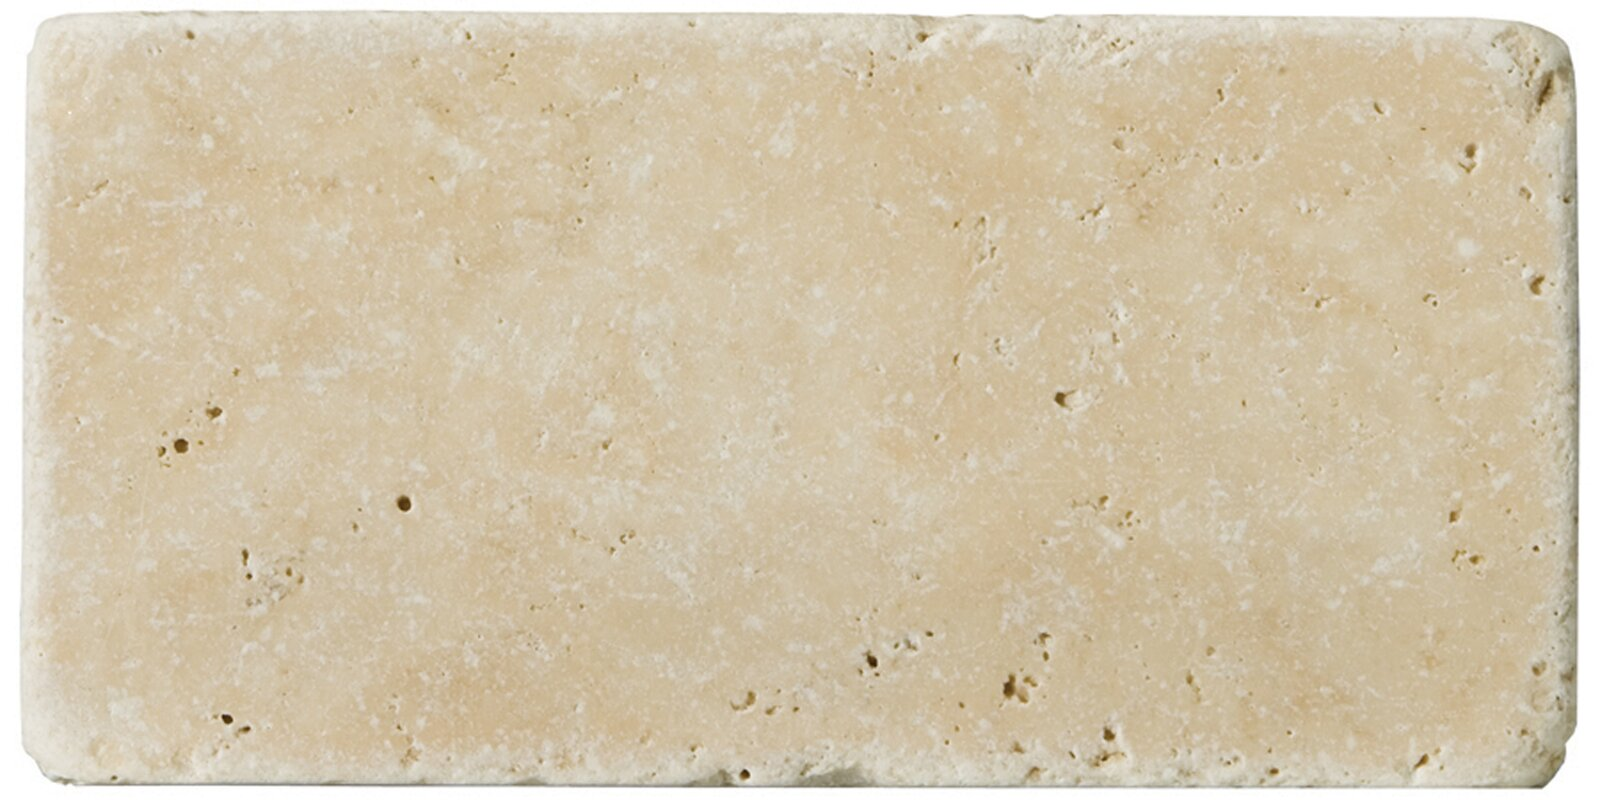 Emser tile travertine 3 x 6 subway tile in unfilled tumbled travertine 3 x 6 subway tile in unfilled tumbled fontane ivory classic doublecrazyfo Gallery